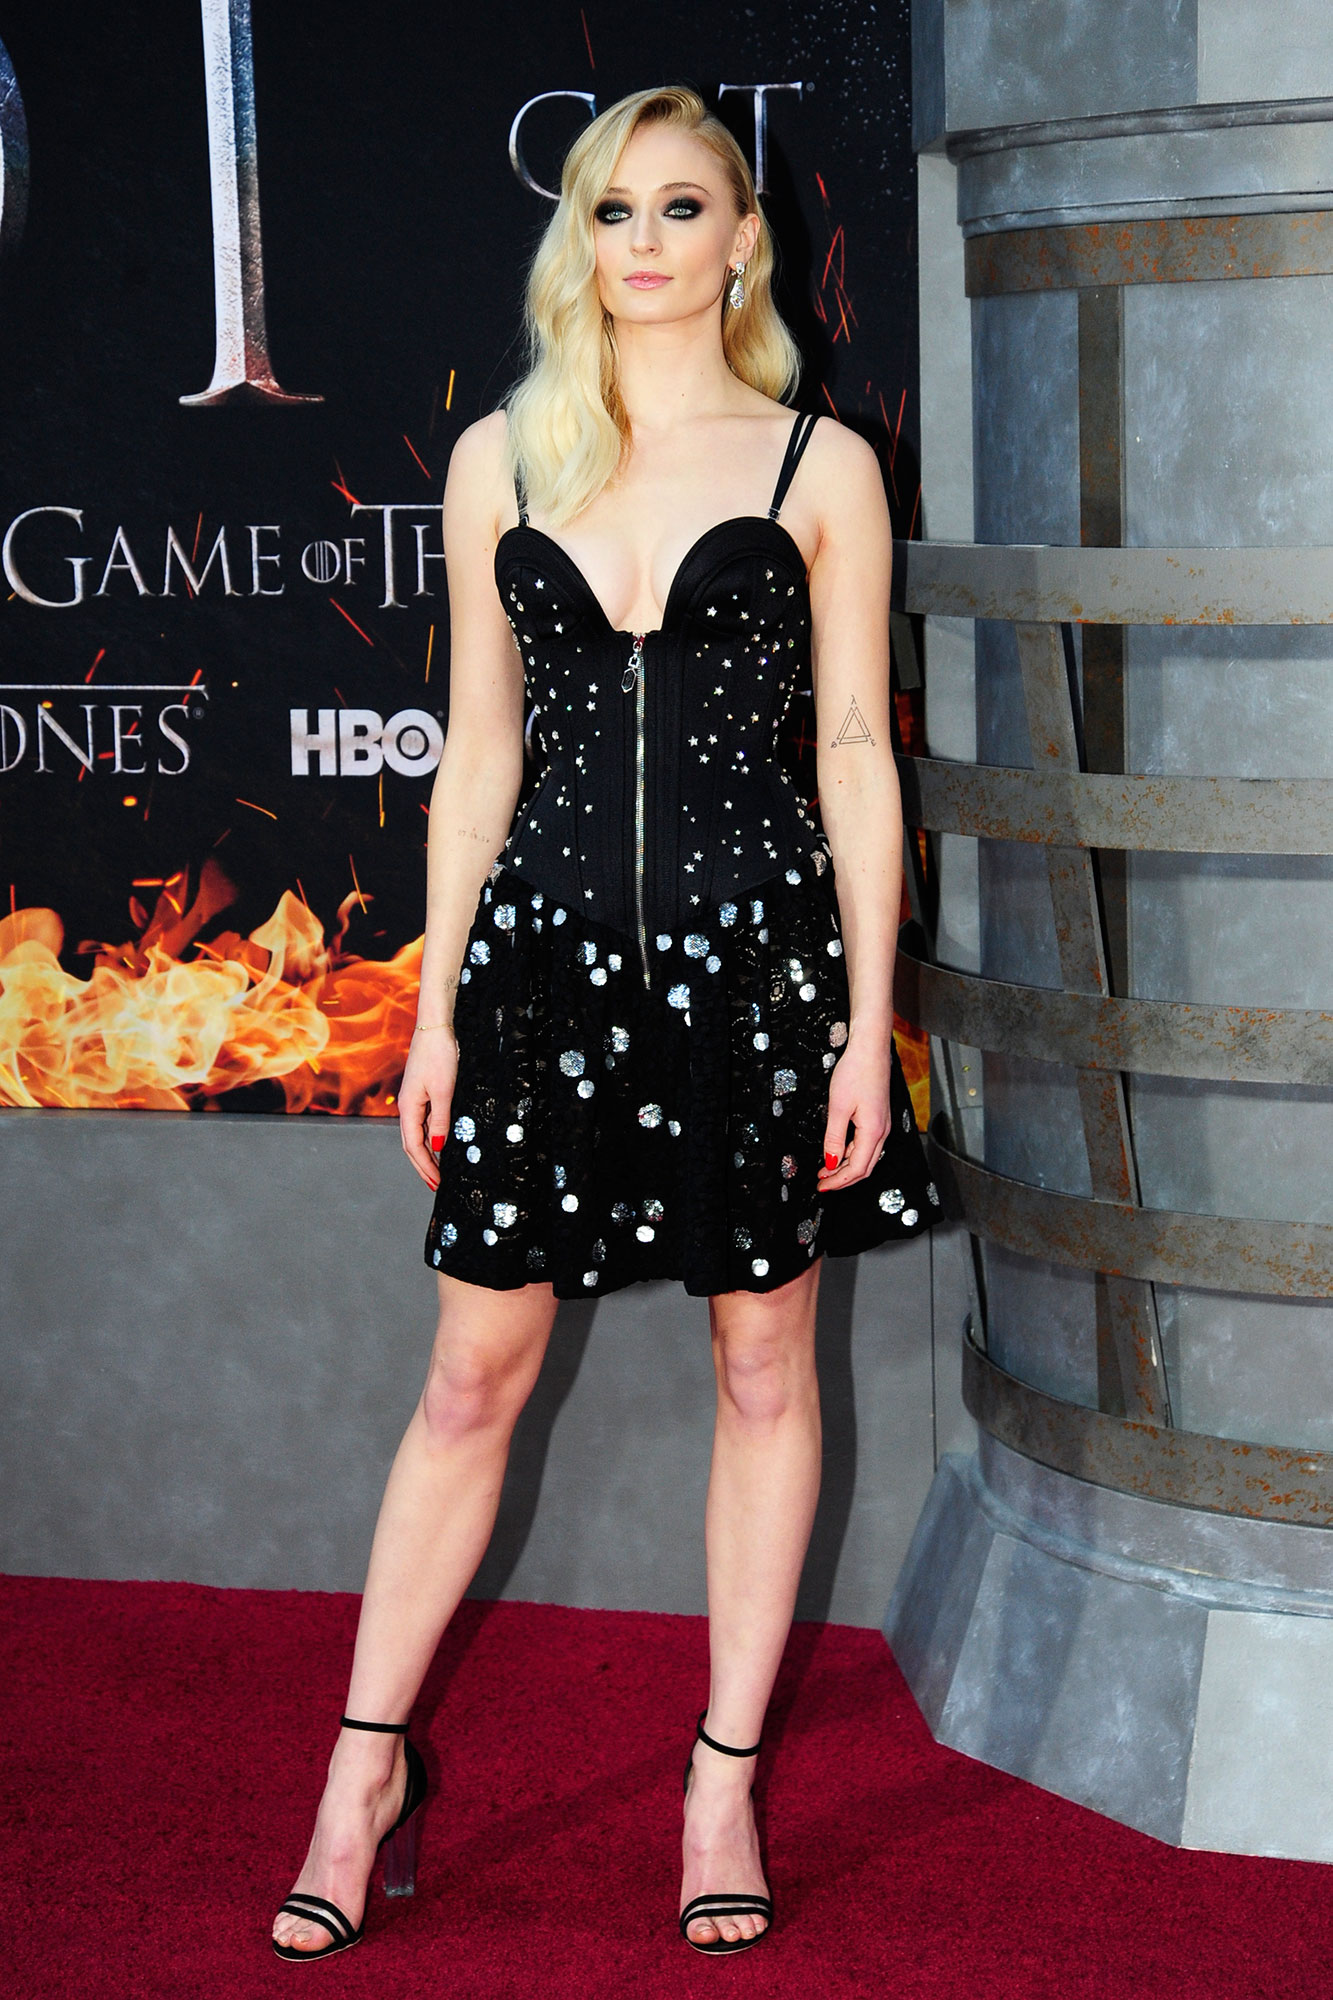 Sophie Turner game of thrones - Wearing a sparkly Louis Vuitton minidress with strappy sandals.